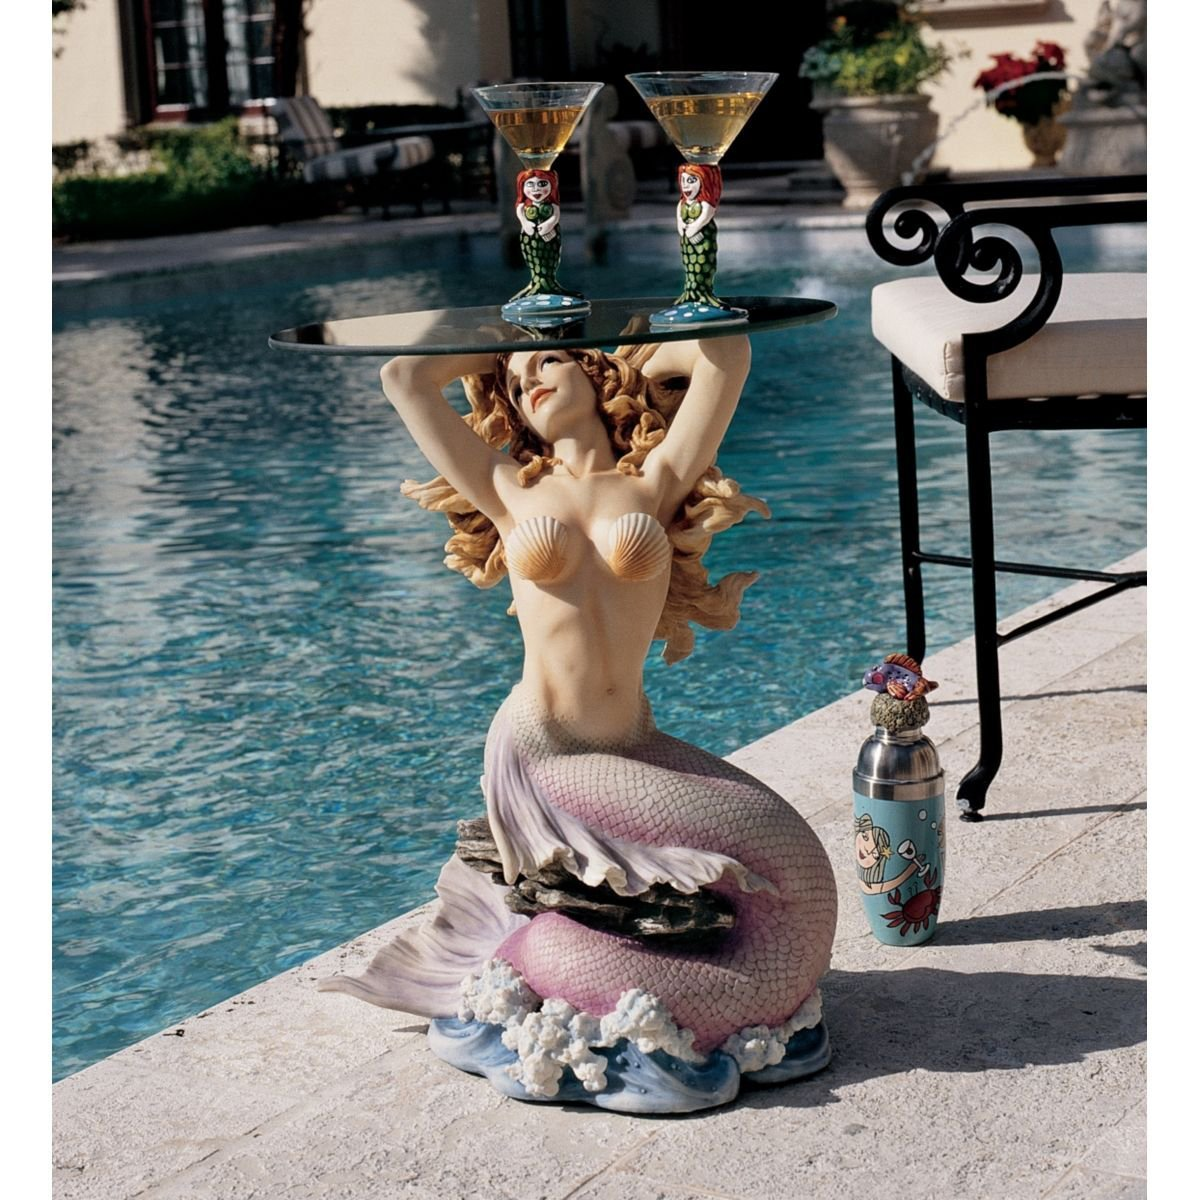 Design Toscano Mermaid of Magellan's Cove Glass-Topped Sculptural Table